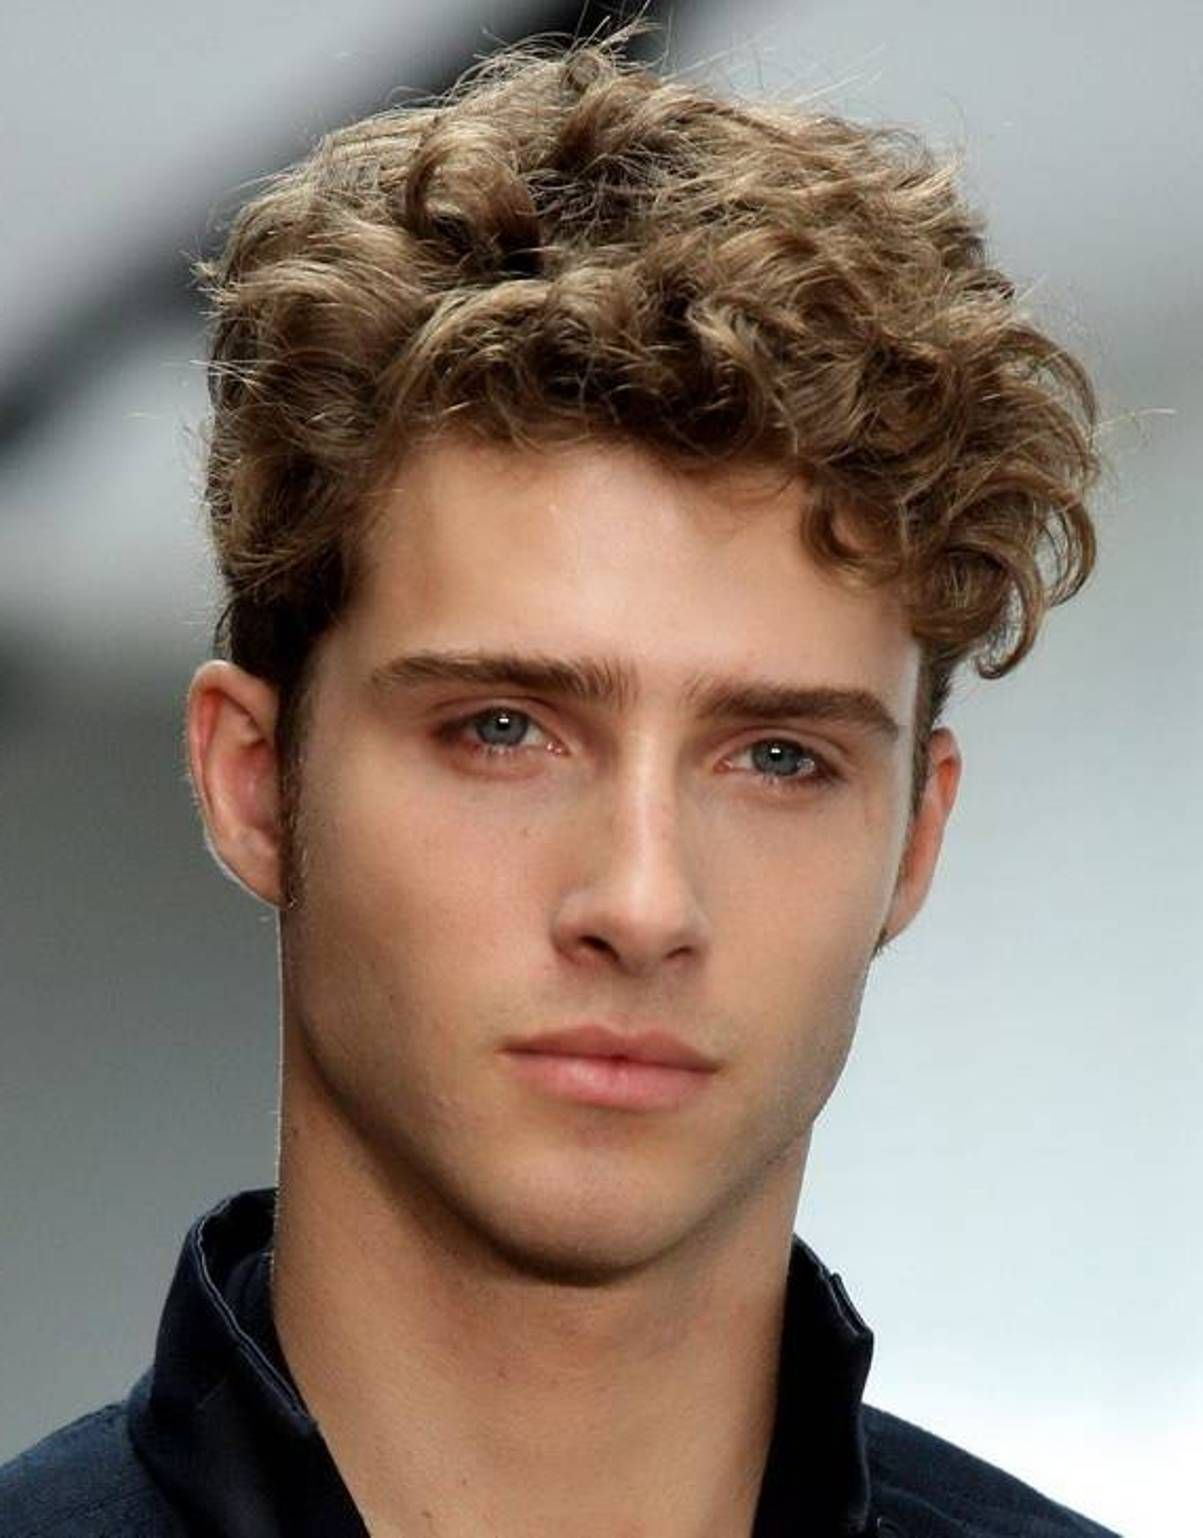 cool short curly hair styles for men - short hair : victorhugohair